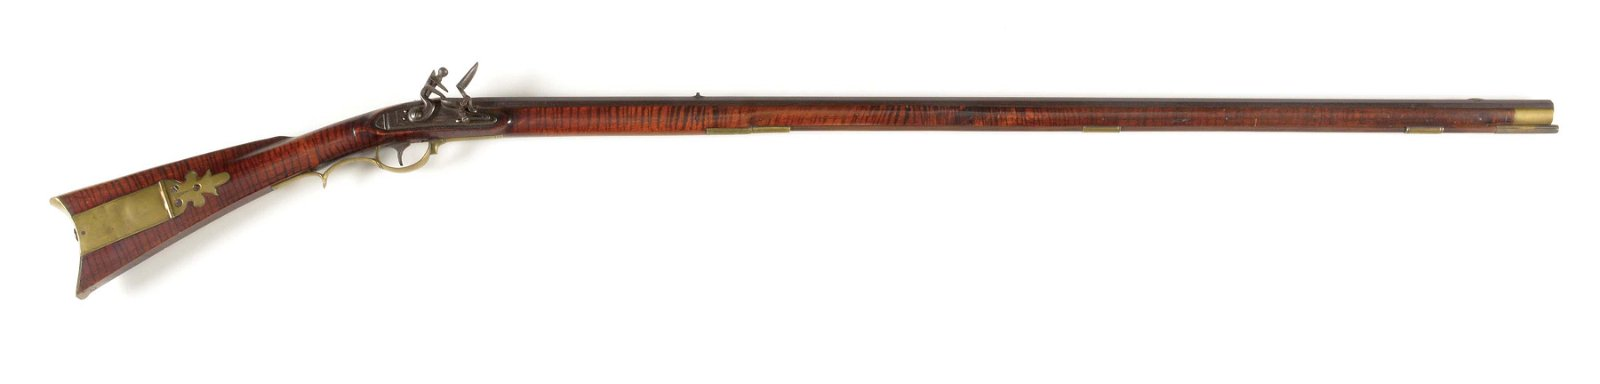 (A) FULLSTOCK FLINTLOCK KENTUCKY RIFLE SIGNED JOHN